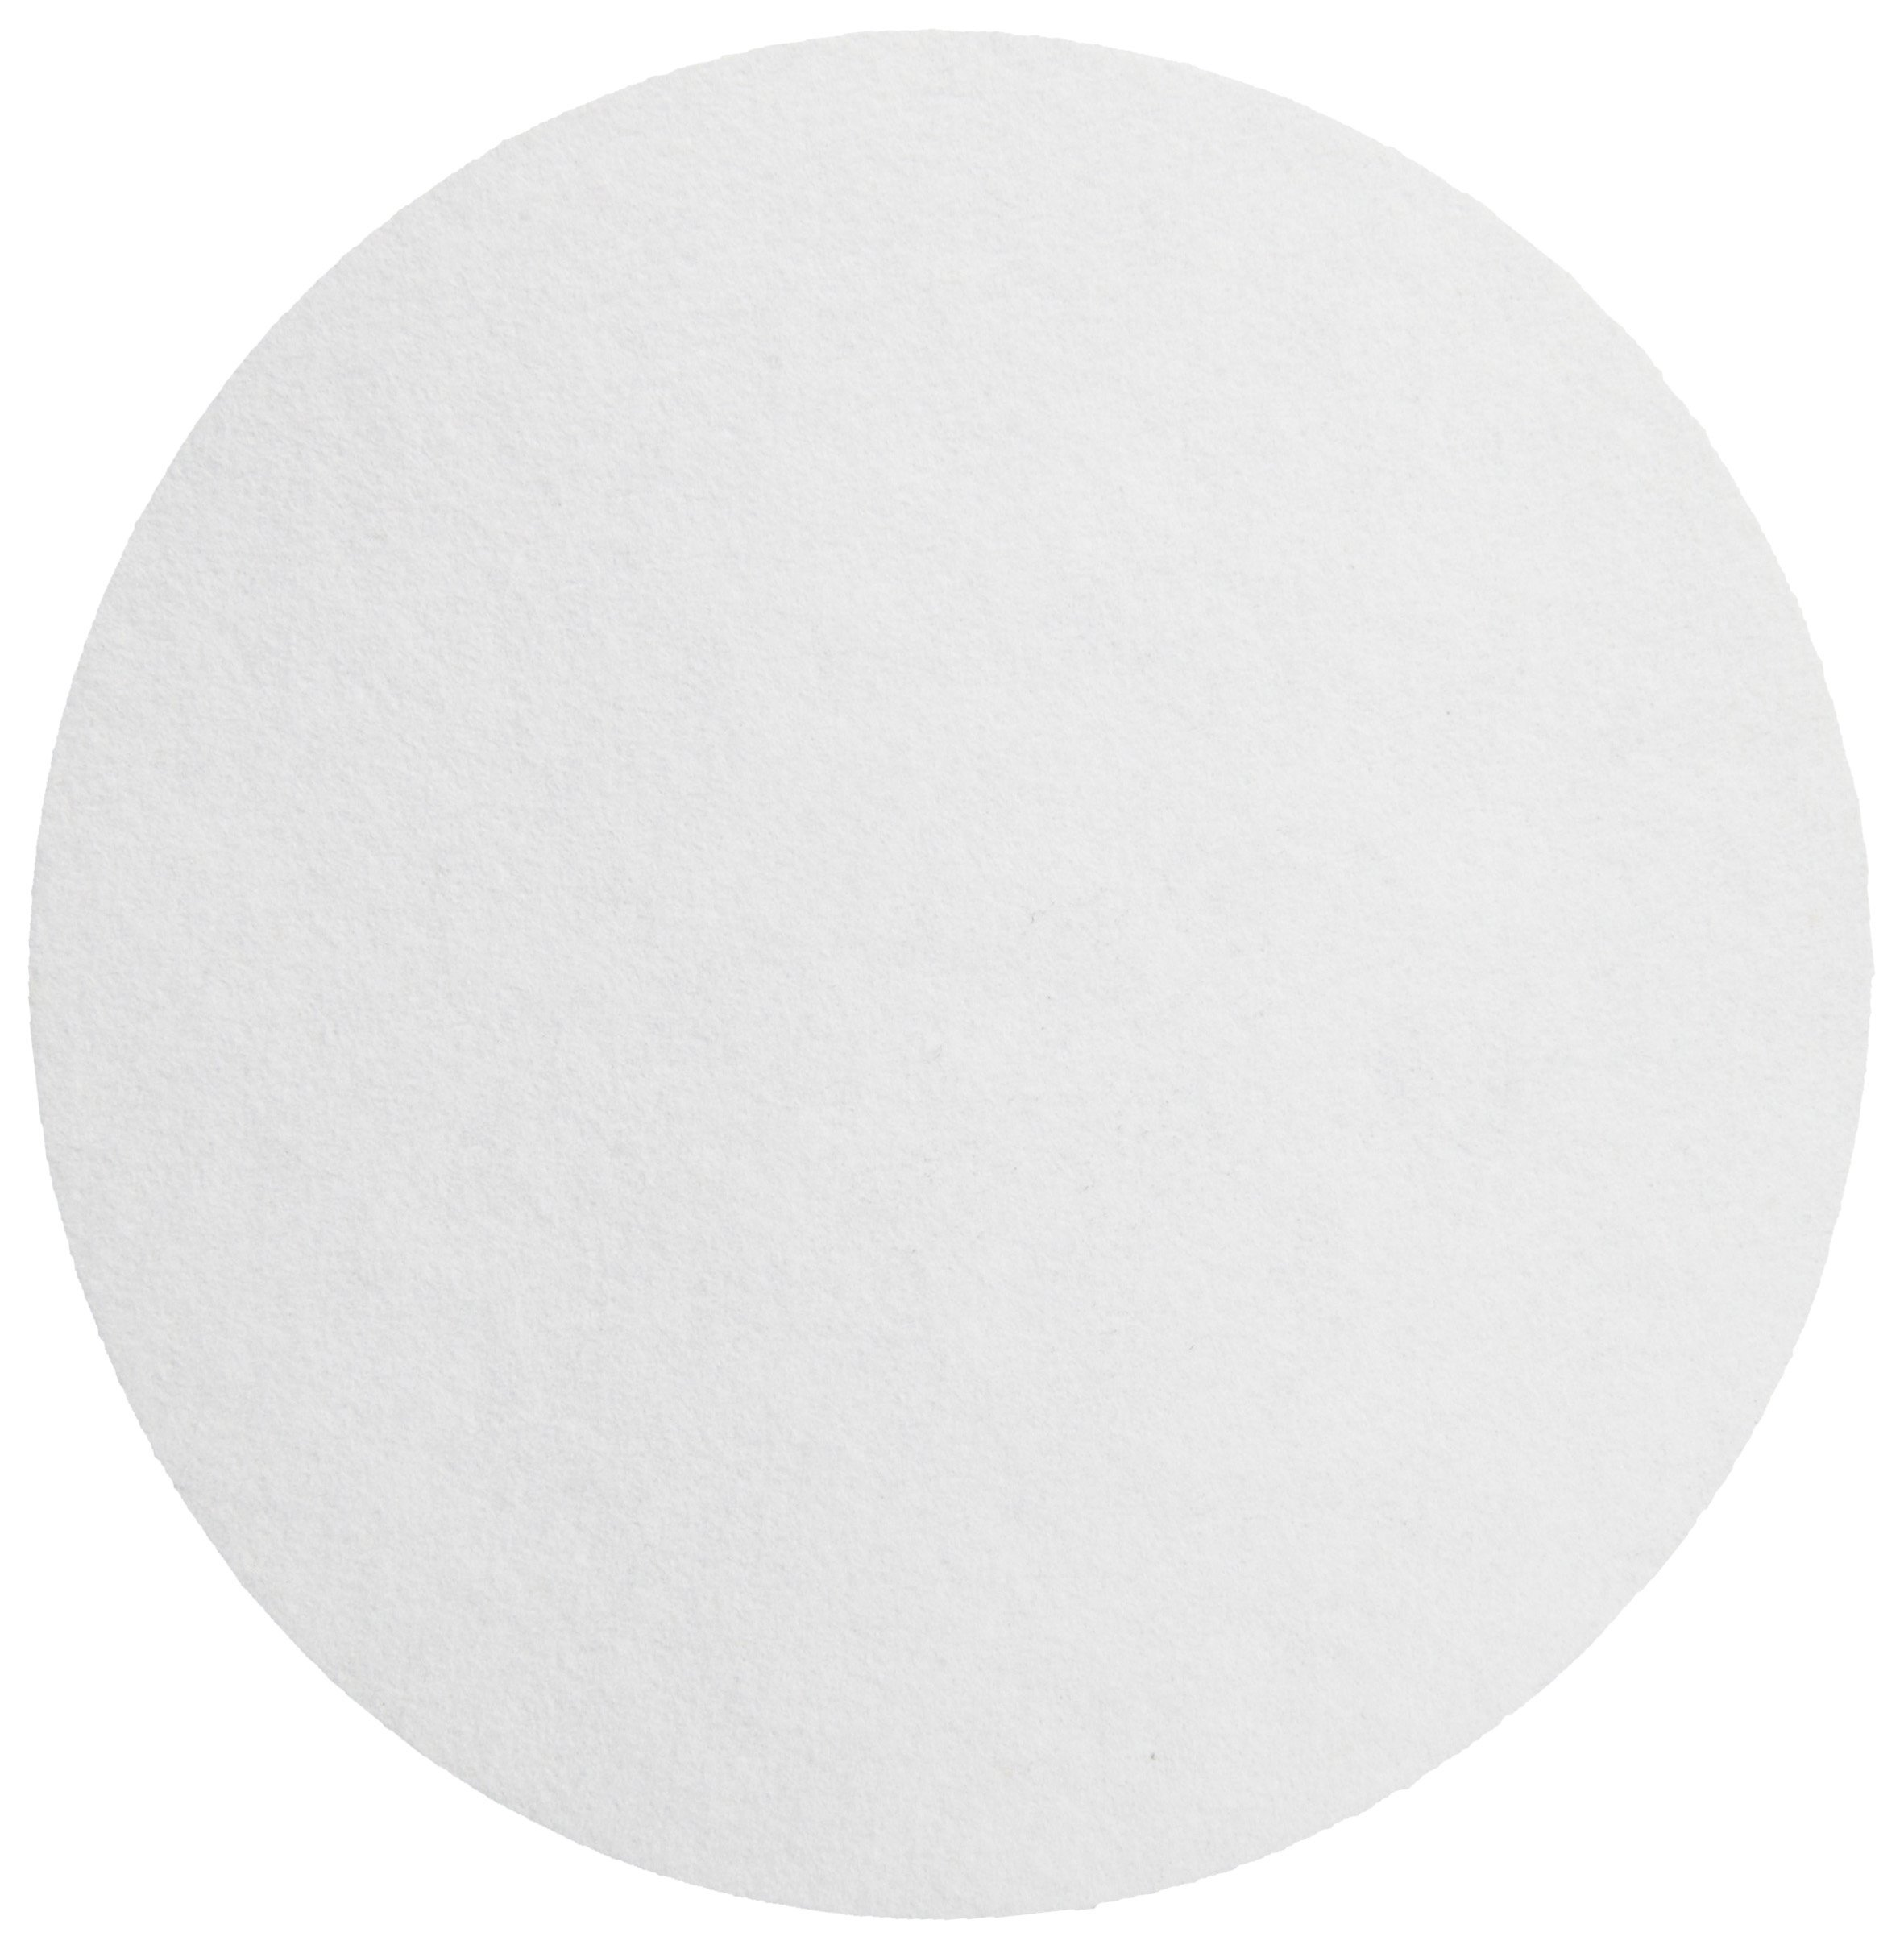 Whatman 1540-150 Hardened Ashless Quantitative Filter Paper, 15.0cm Diameter, 8 Micron, Grade 540 (Pack of 100) by Whatman